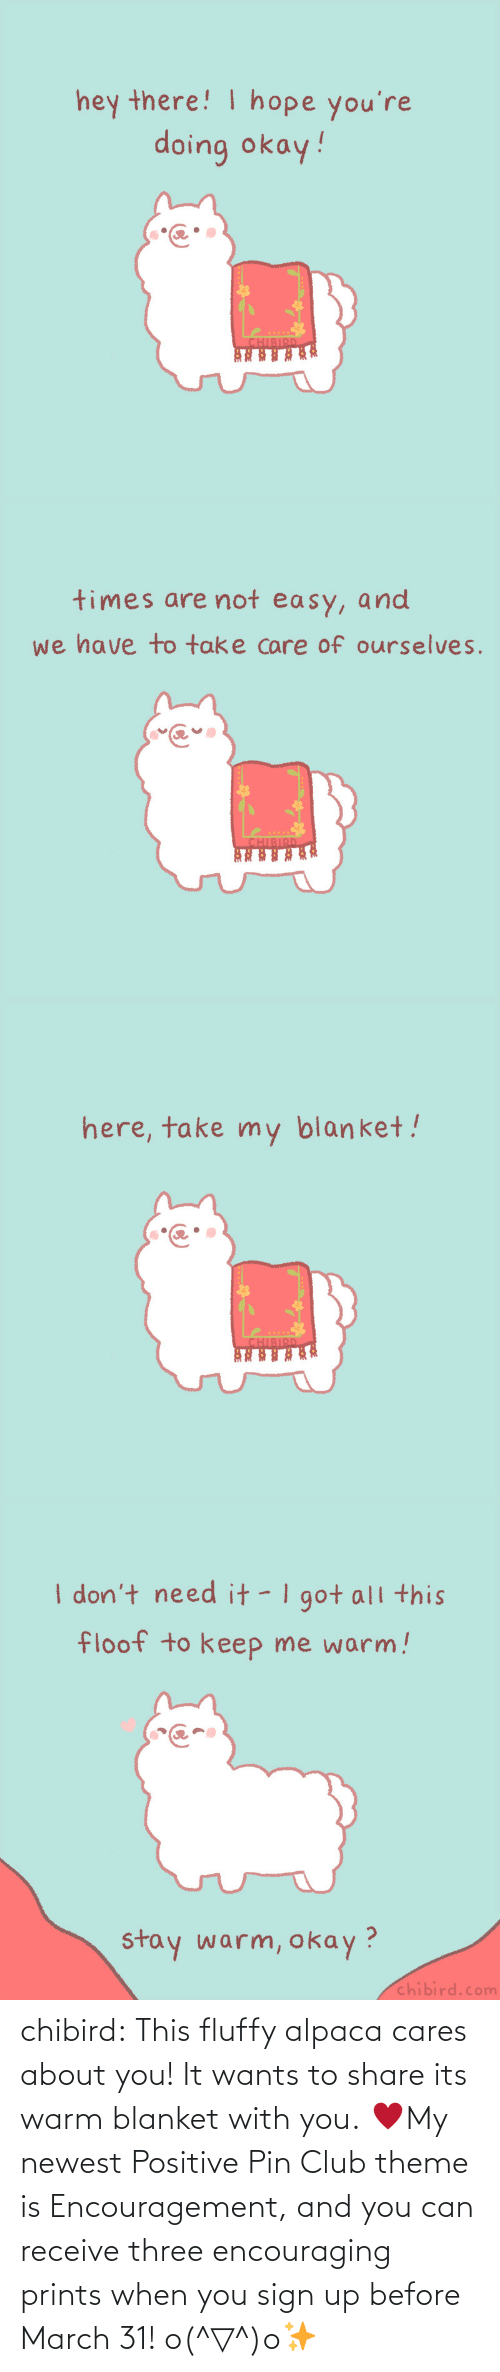 Its: chibird:  This fluffy alpaca cares about you! It wants to share its warm blanket with you. ♥My newest Positive Pin Club theme is Encouragement, and you can receive three encouraging prints when you sign up before March 31! o(^▽^)o✨